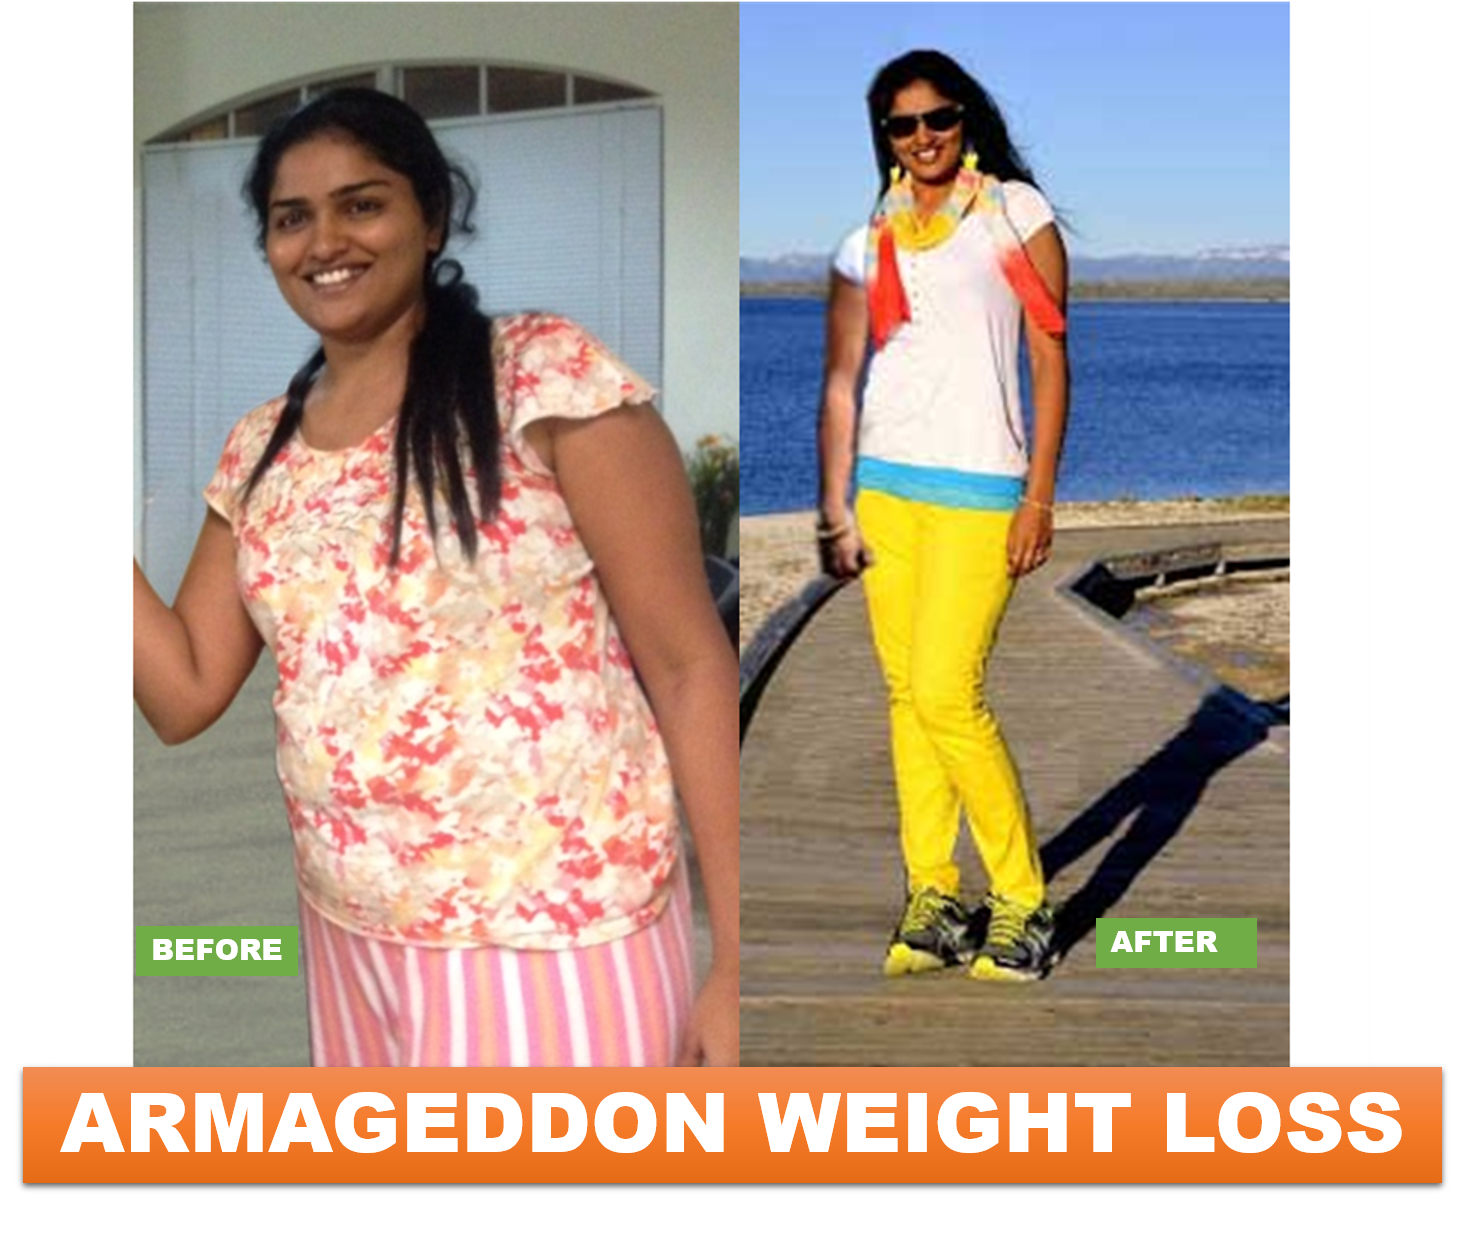 Manasa Reddy - Armageddon Weight Loss DVD Program - Best weight loss DVD for women and men - Best exercise DVD program - post pregnancy weight loss program - 3